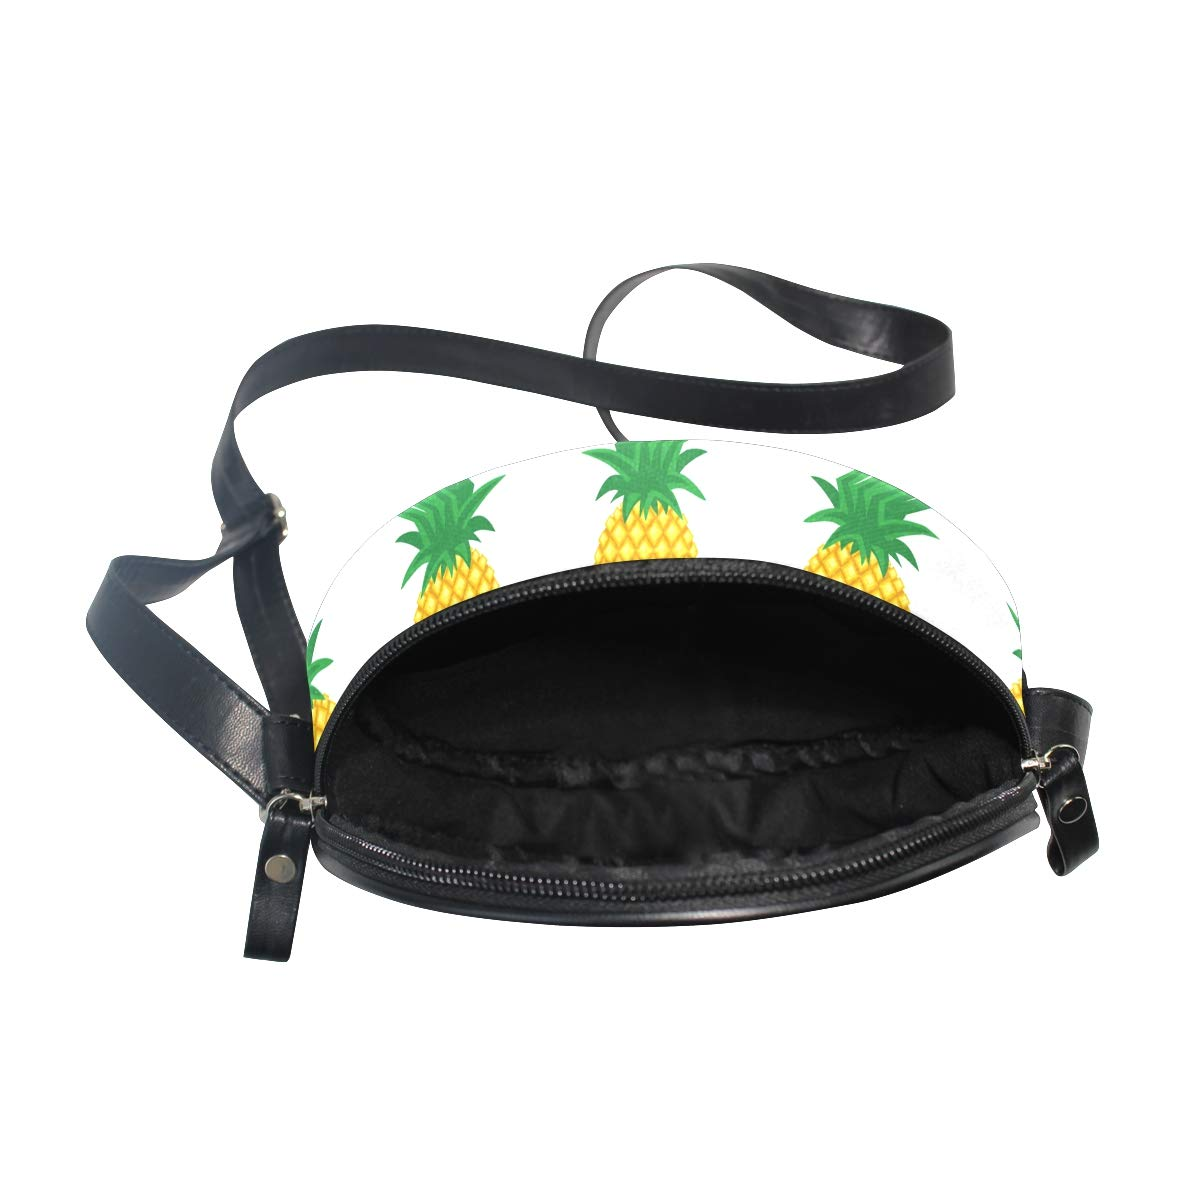 KEAKIA Smiling Sleeping Pineapples Round Crossbody Bag Shoulder Sling Bag Handbag Purse Satchel Shoulder Bag for Kids Women